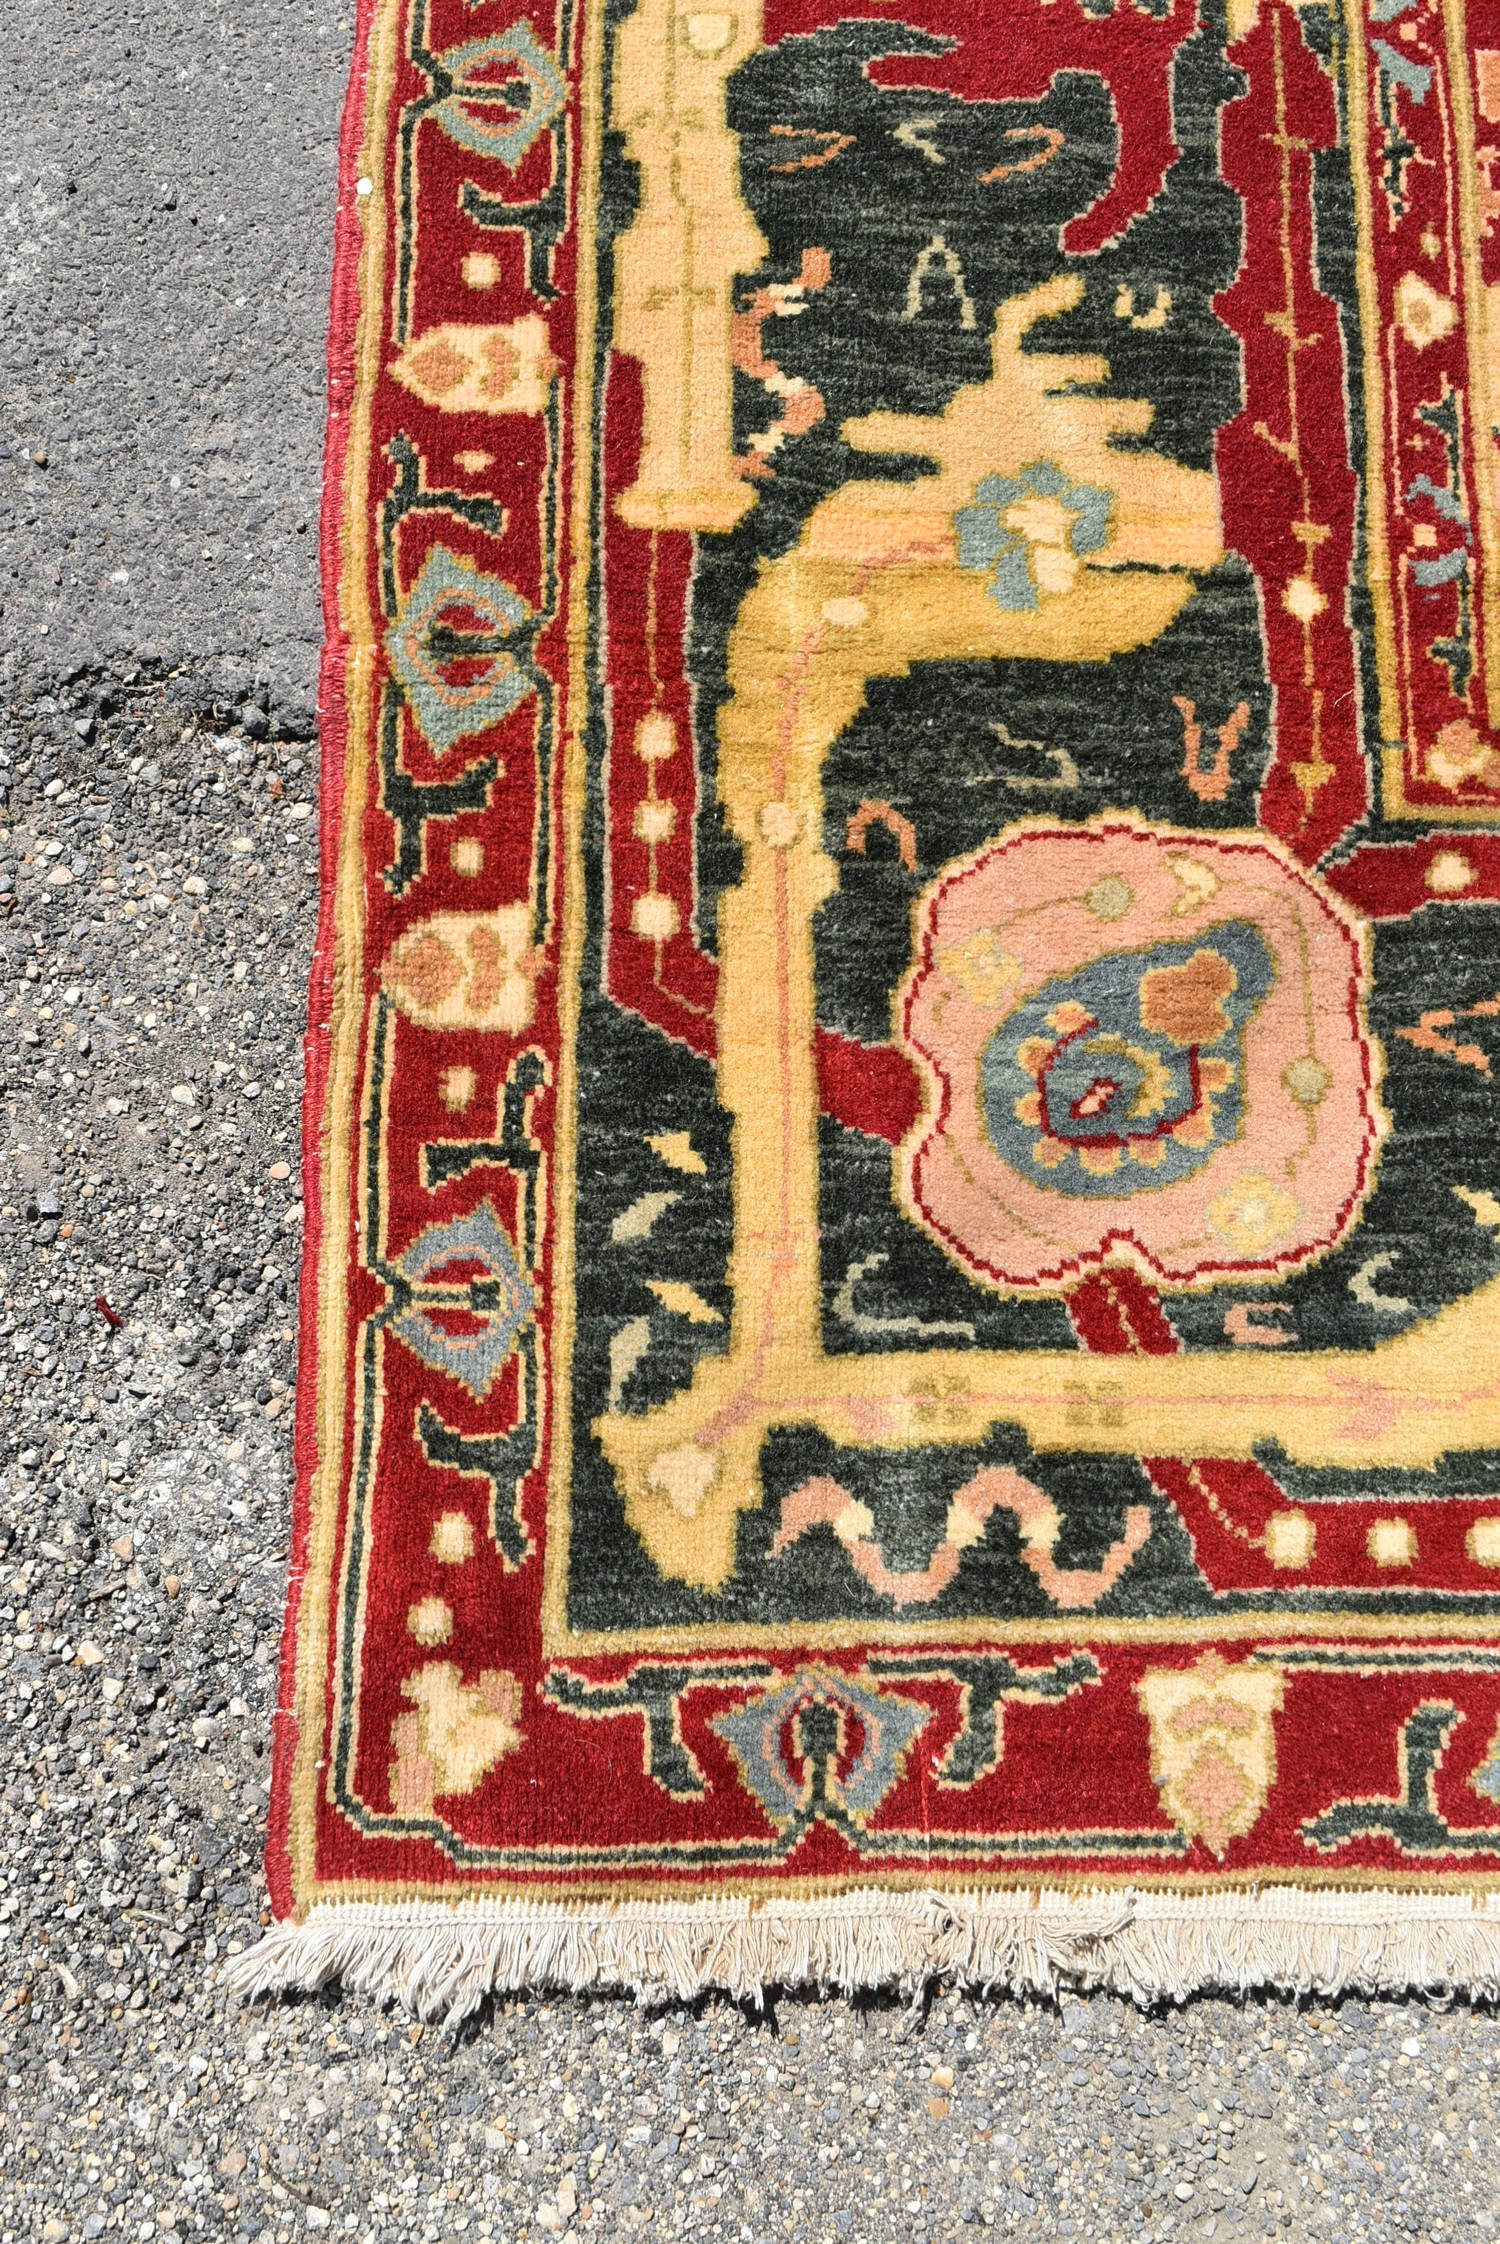 A fine large Agra carpet with all over repeating scrolling palmette and lotus flower decoration on a - Image 3 of 4